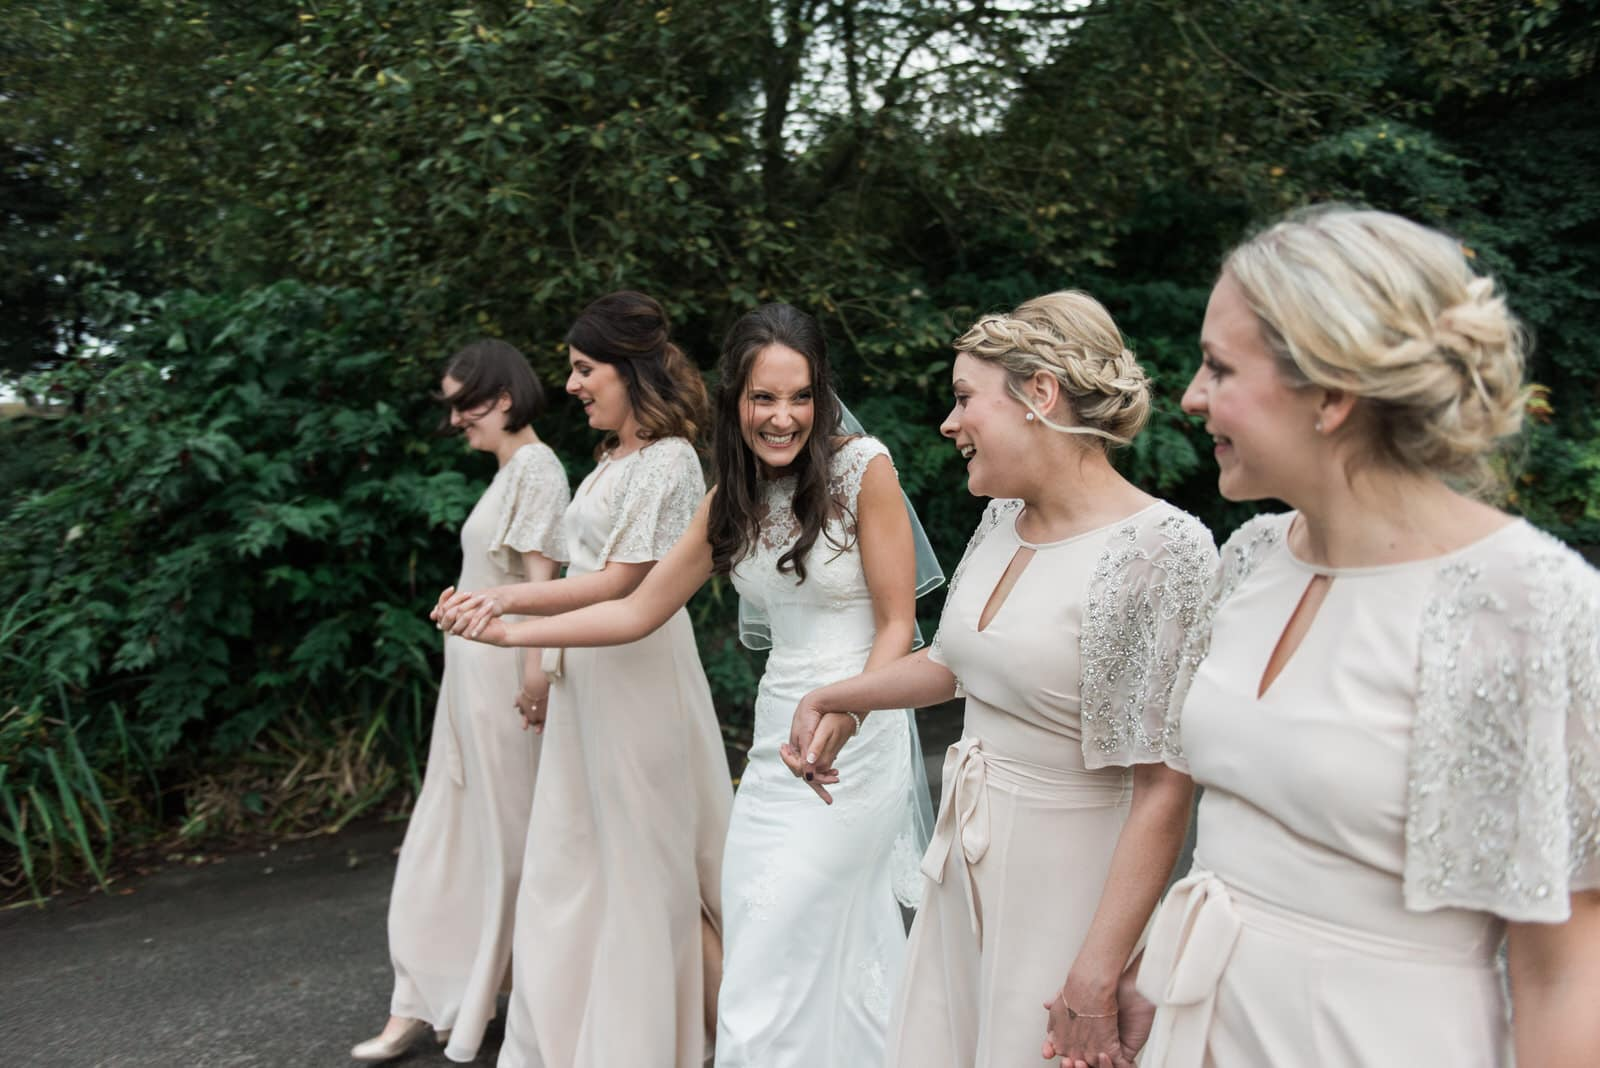 Bride walking with her bridesmaids in the grounds of Whirlowbrook Hall